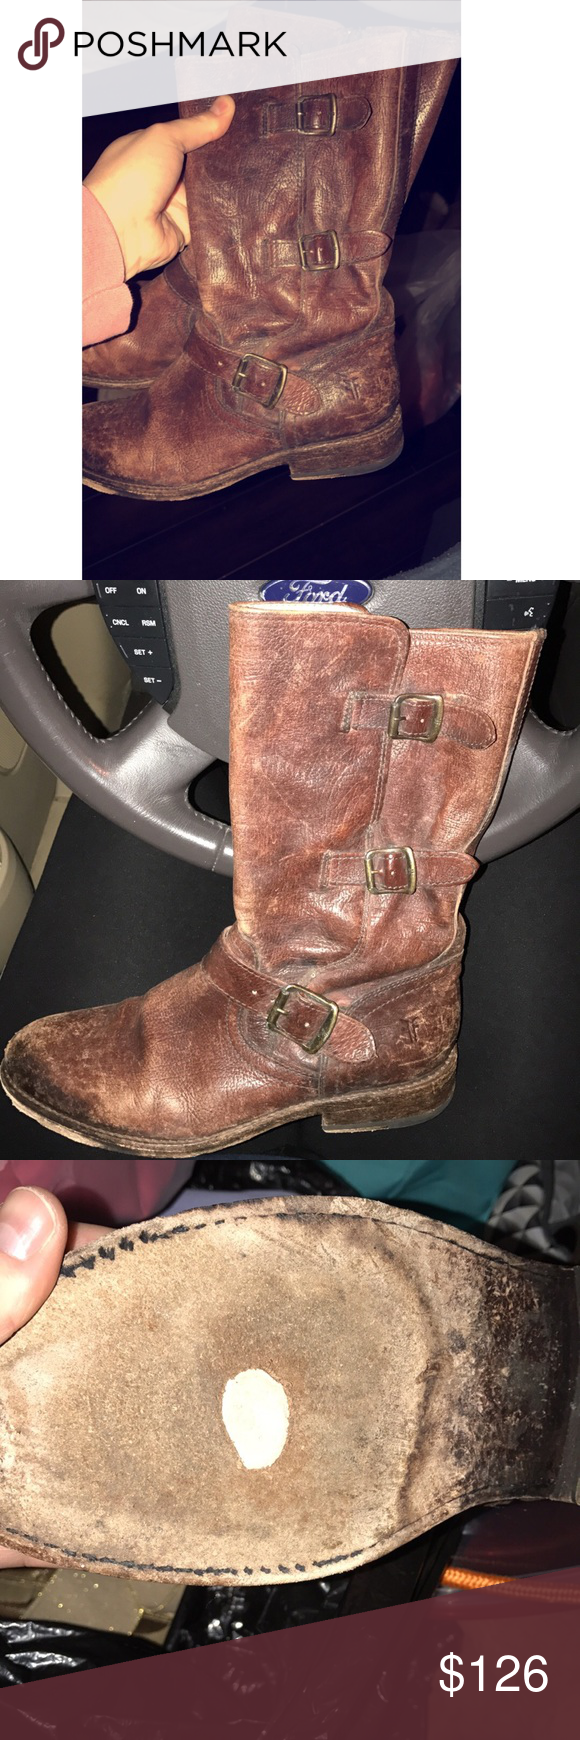 Frye Boots Frye Boots, size 8.5, some wear on bottom of left boot as seen in pictures above, open to offers Frye Shoes Combat & Moto Boots